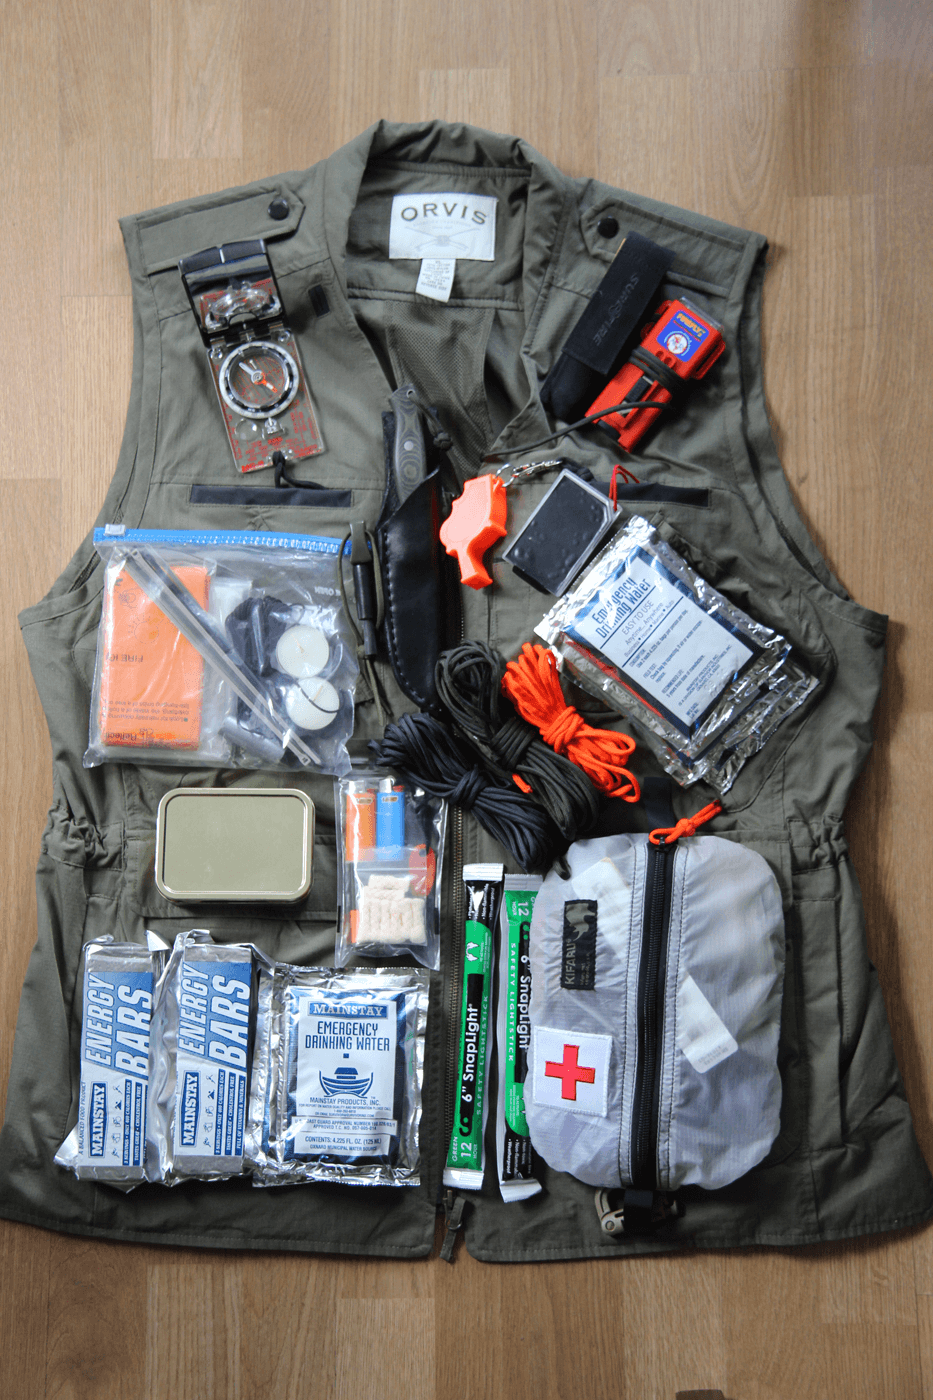 Proven Vest Your Wearable Can GearMilitary Save American Life qGSUzVpM